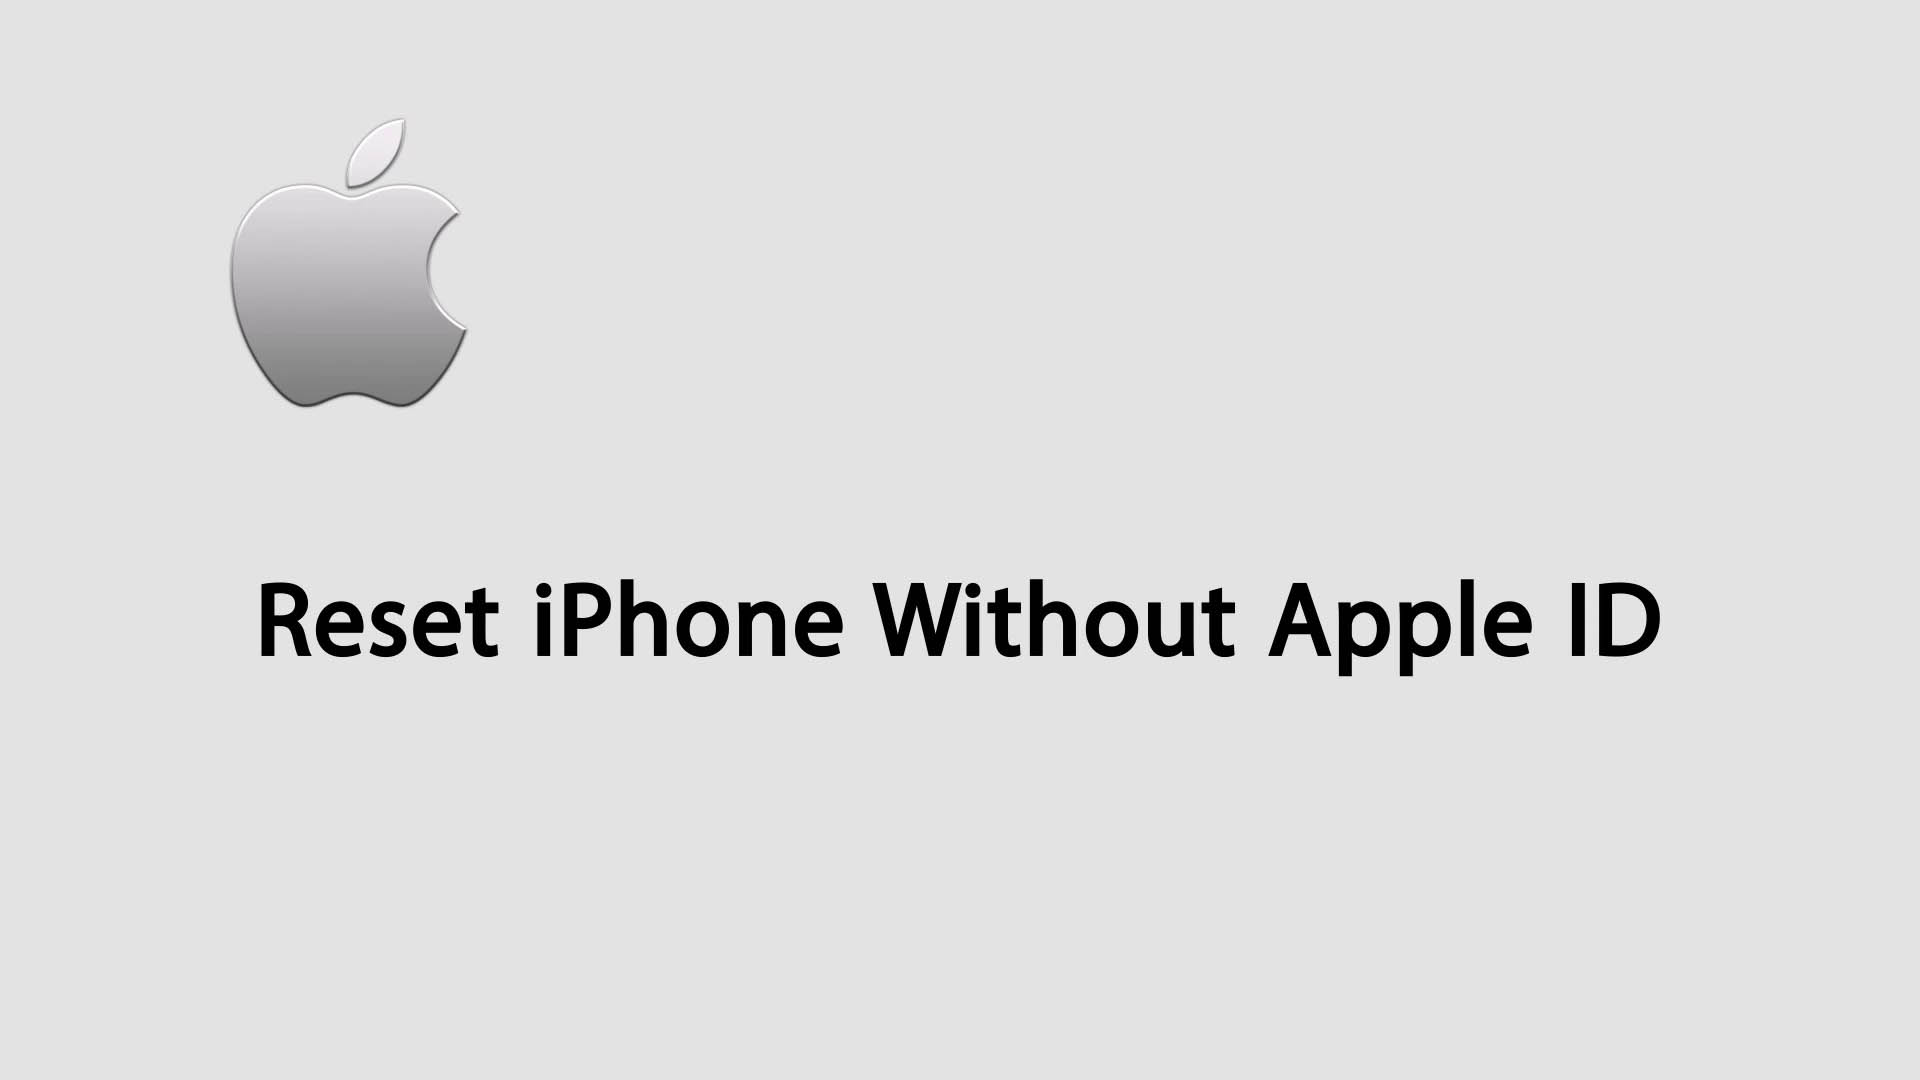 Reset your iPhone Without Apple ID